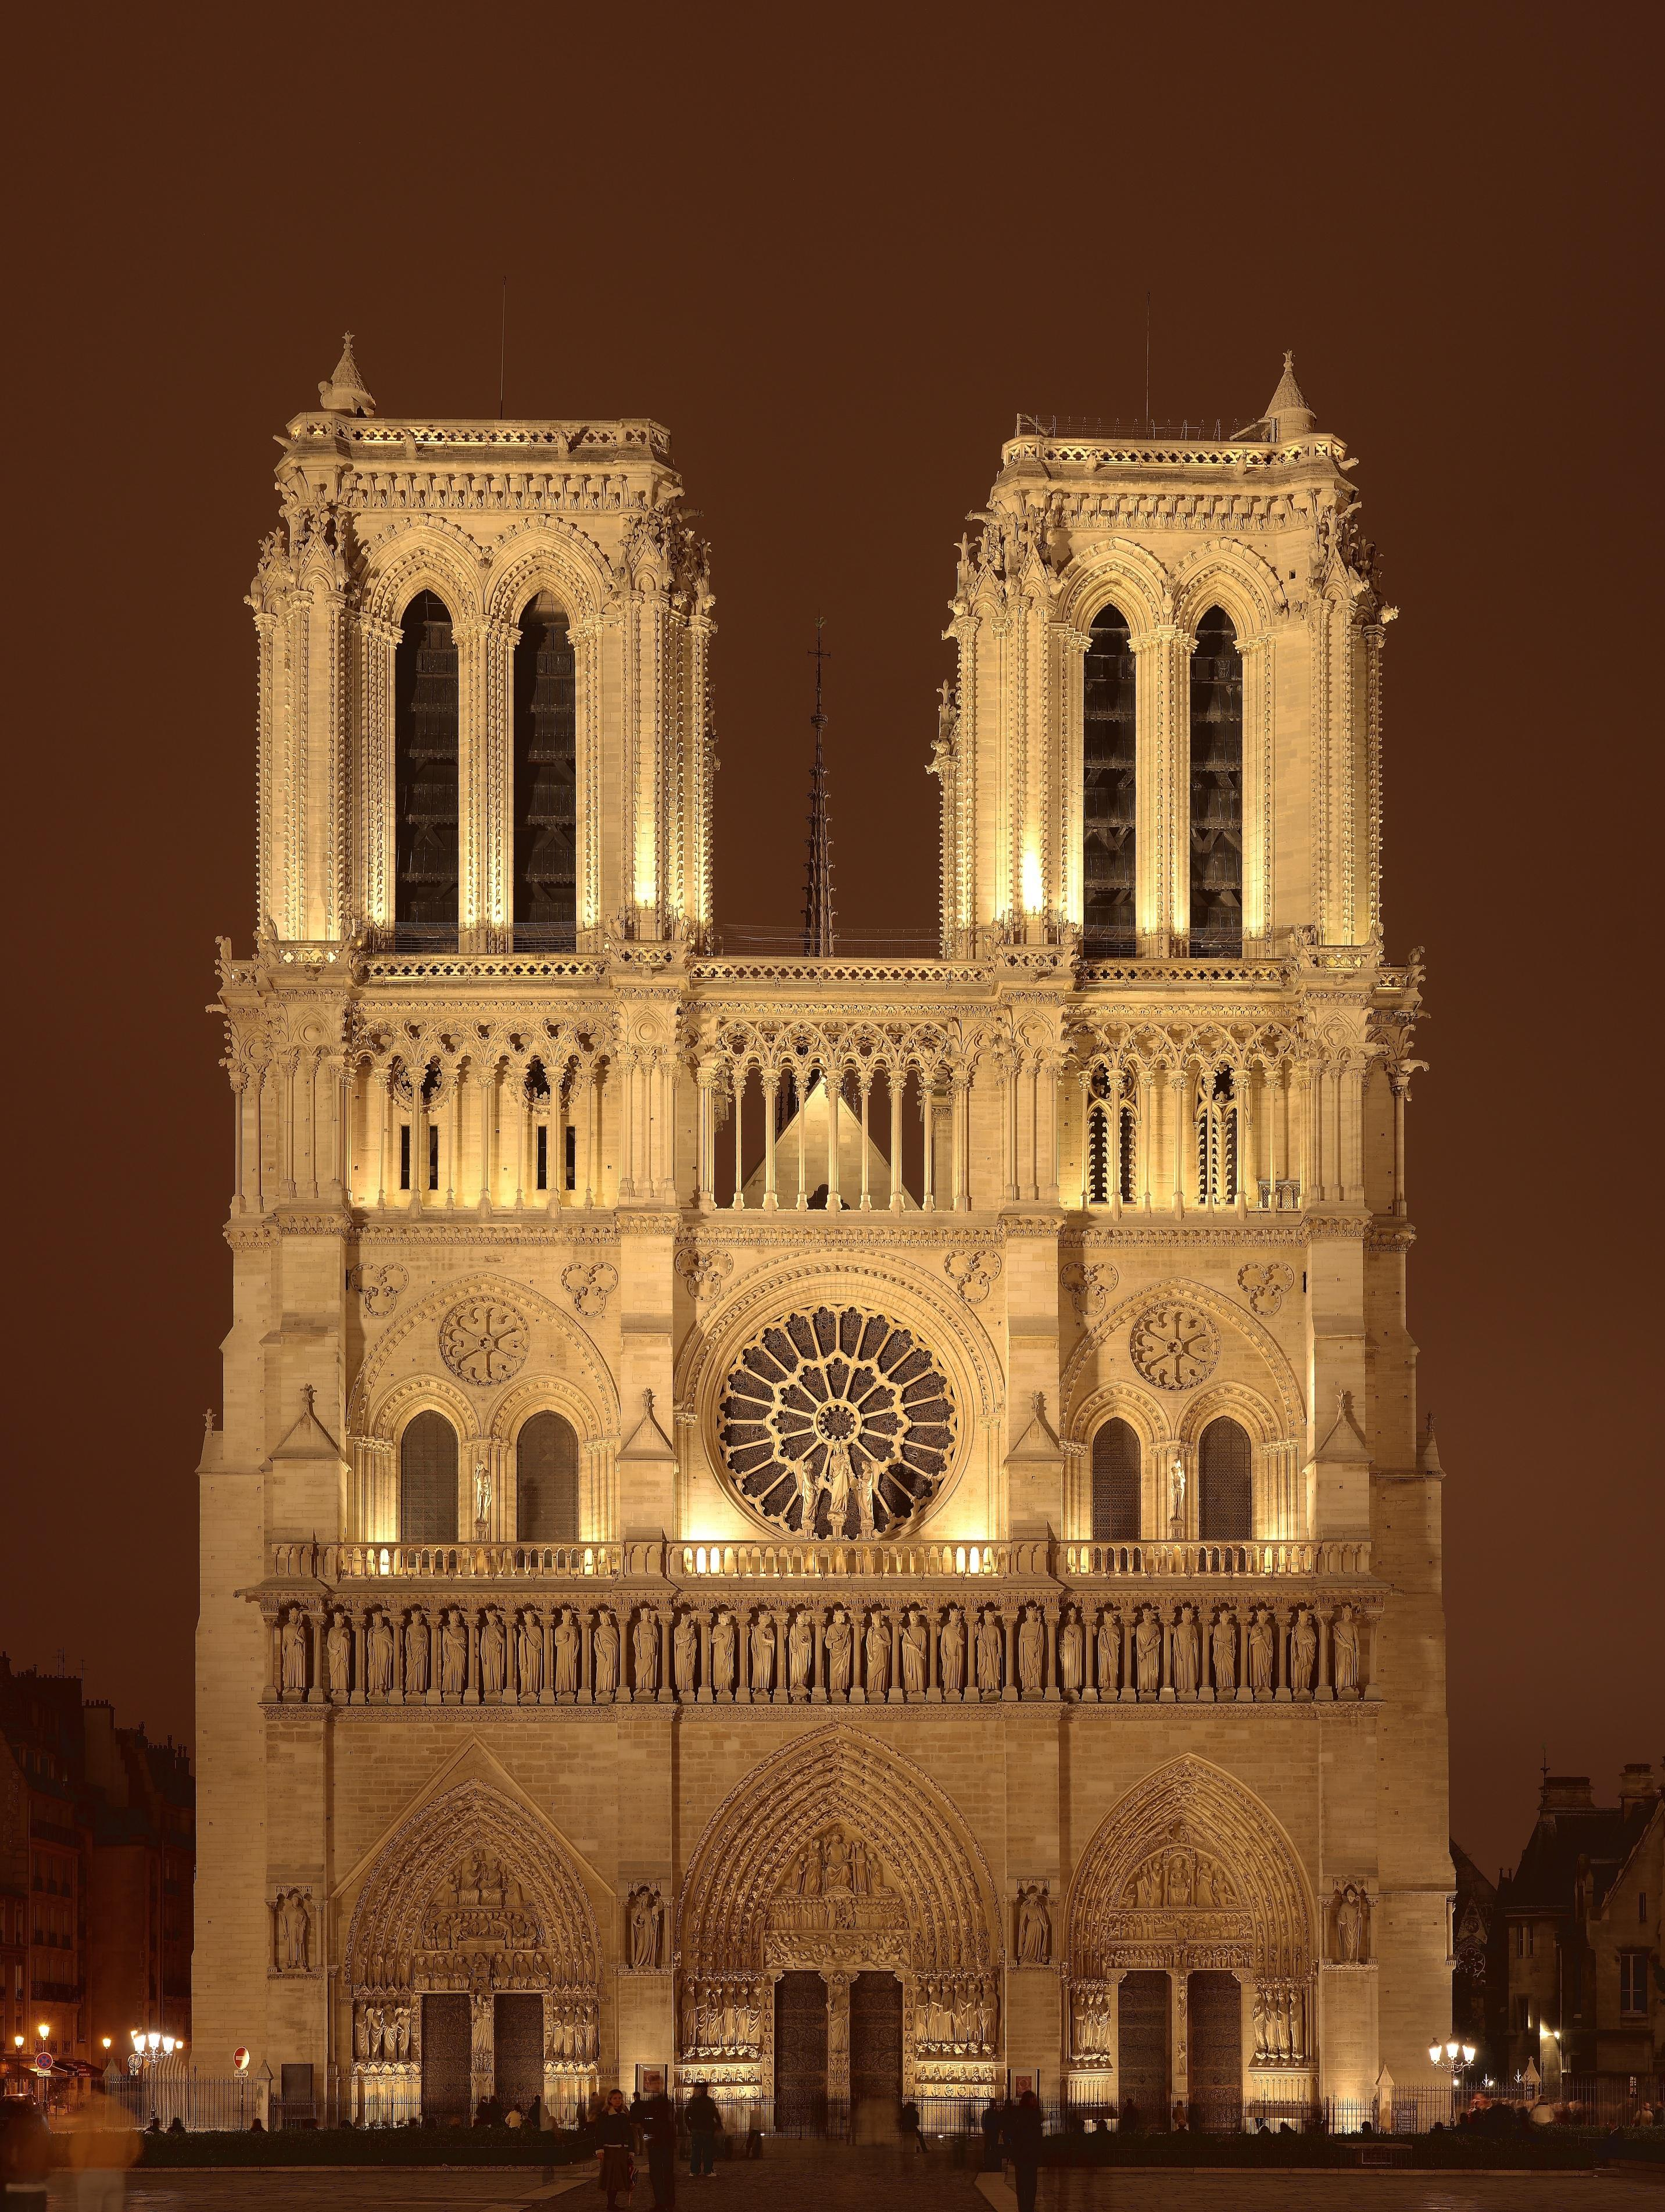 Notre Dame De Paris Wallpaper Free Download High Quality HD